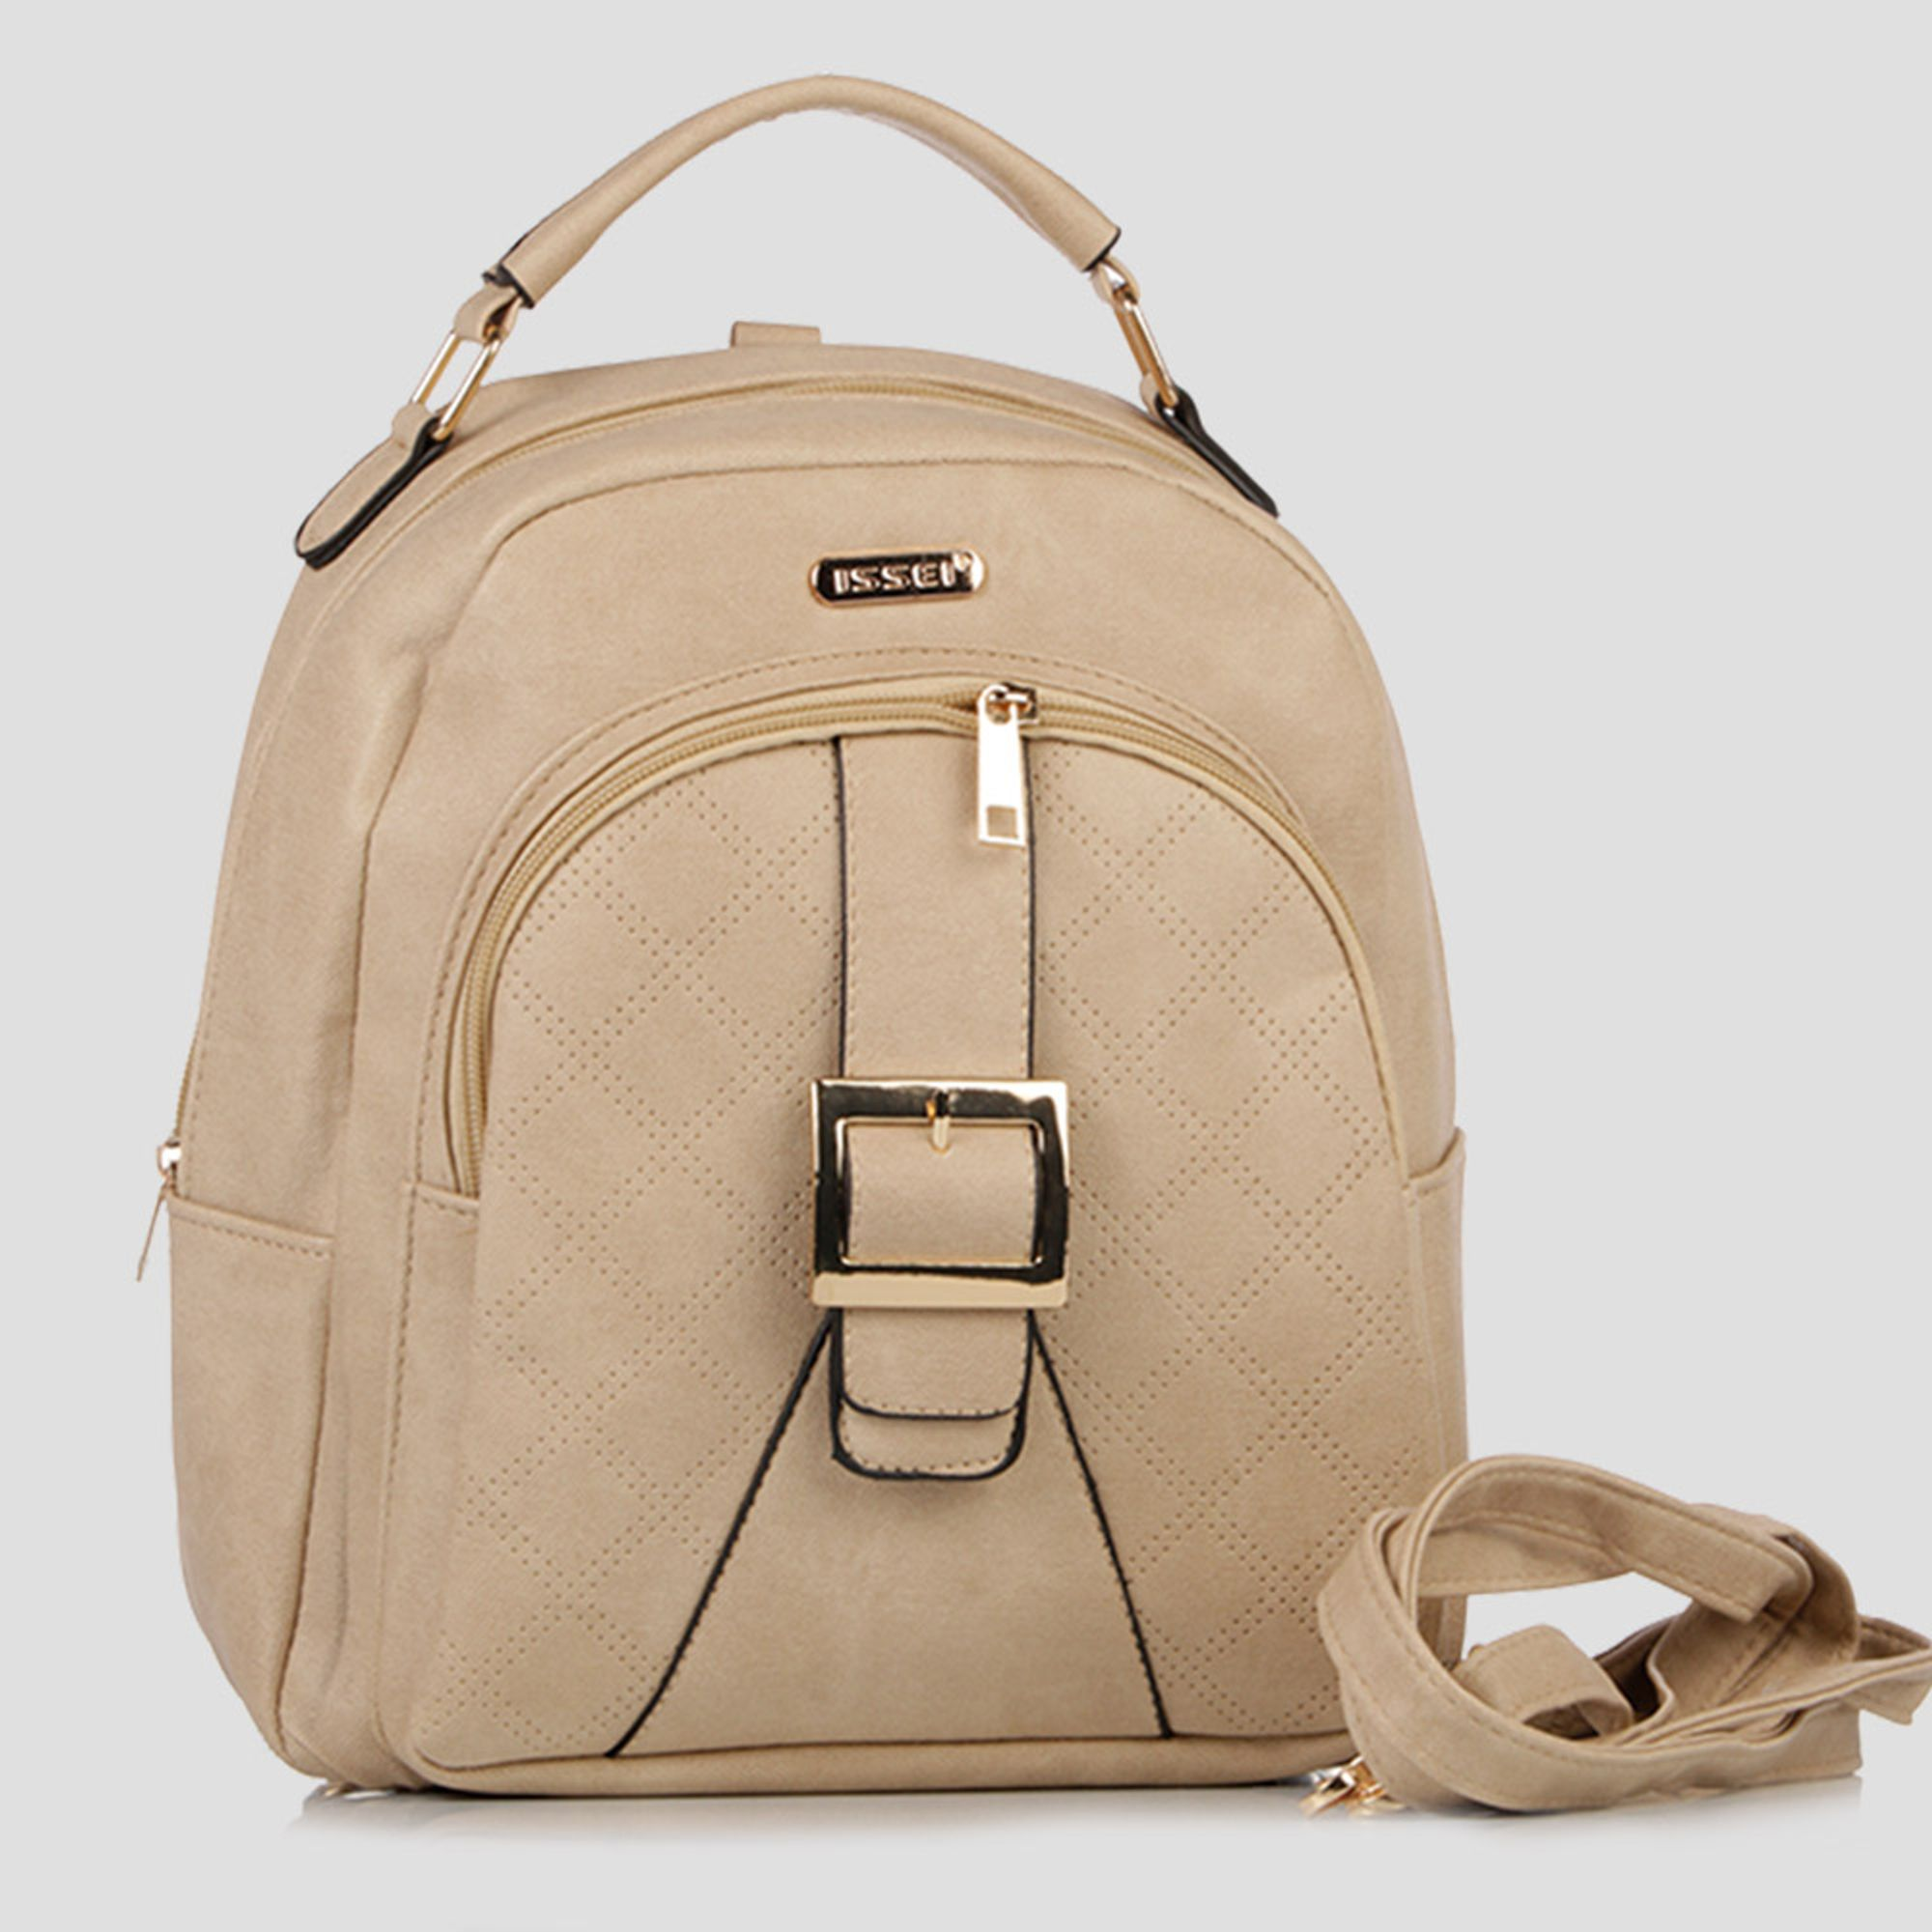 MORRAL-ISSEI-MUJER-681-CAFE